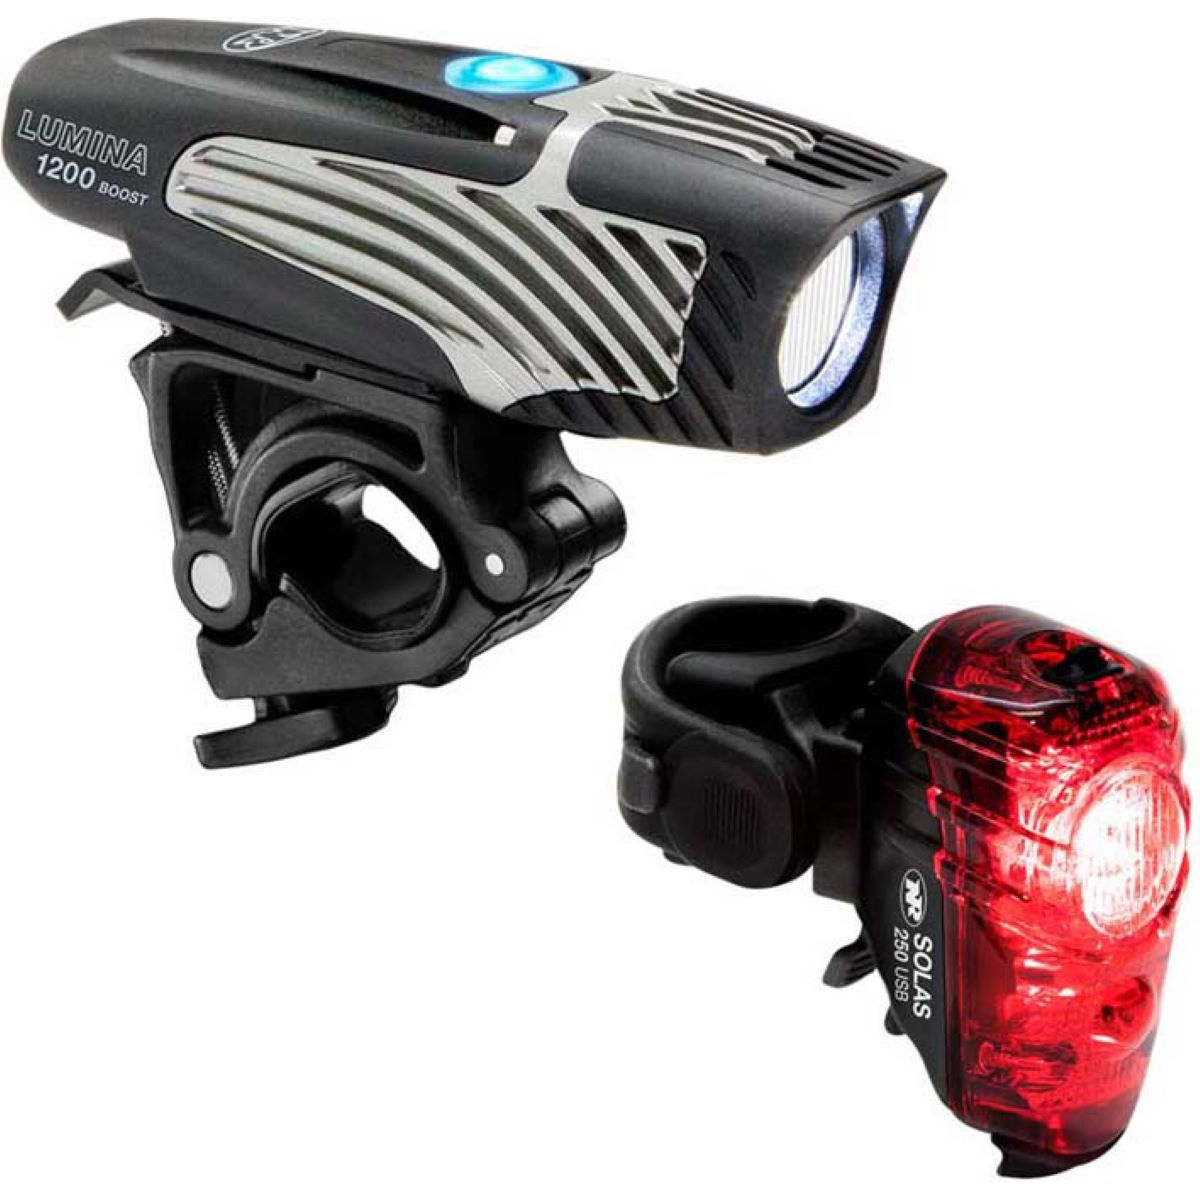 NiteRider Lumina 1200 Boost/Solas 250 Combo Light Set - Juegos de luces